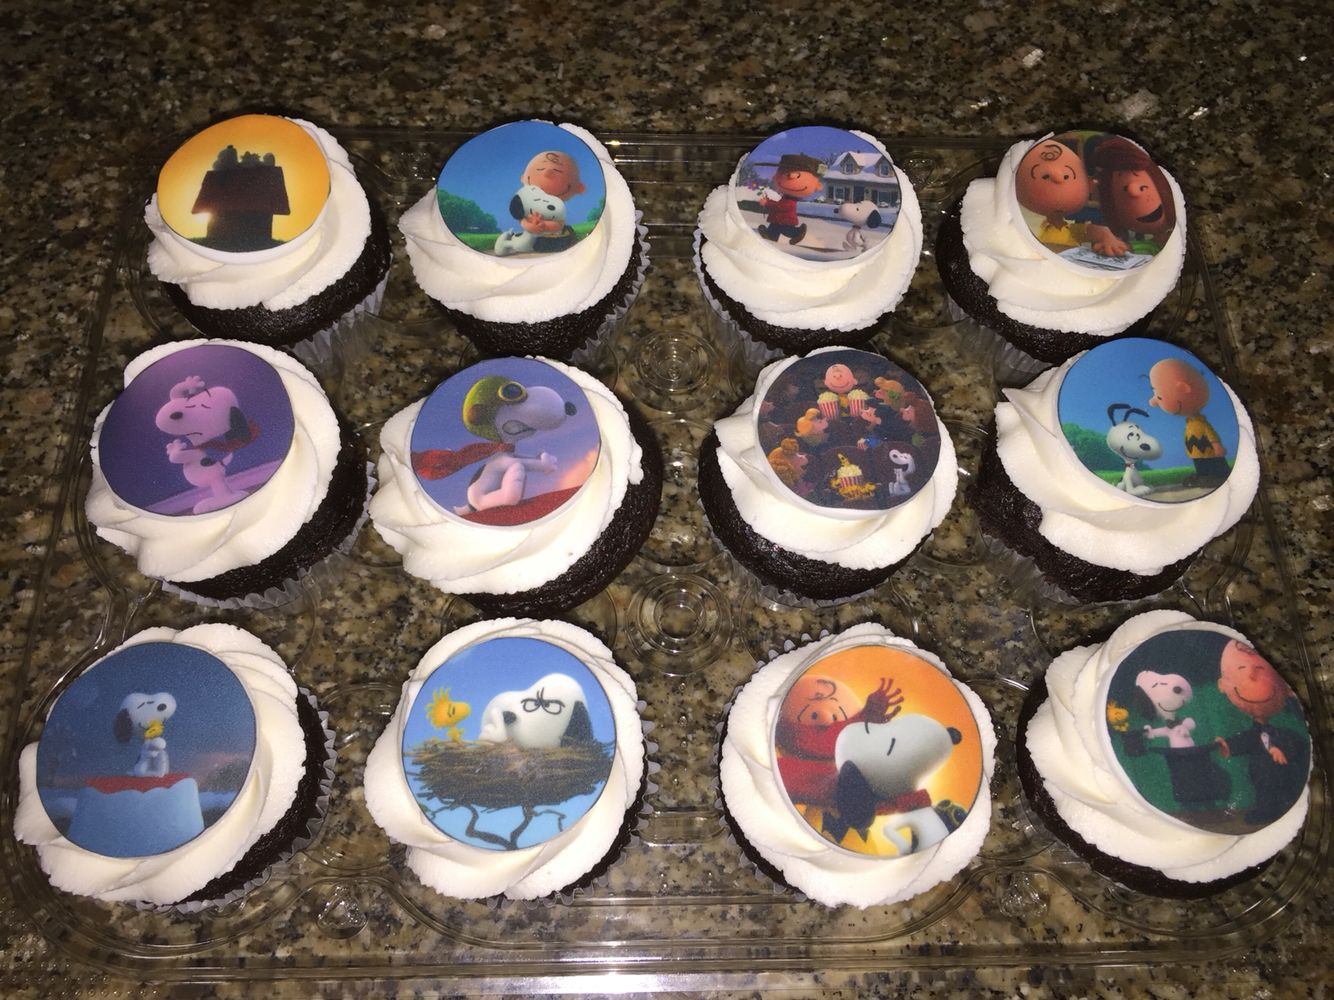 Snoopy peanuts characters cupcakes  www.daydreamcupcakes.com